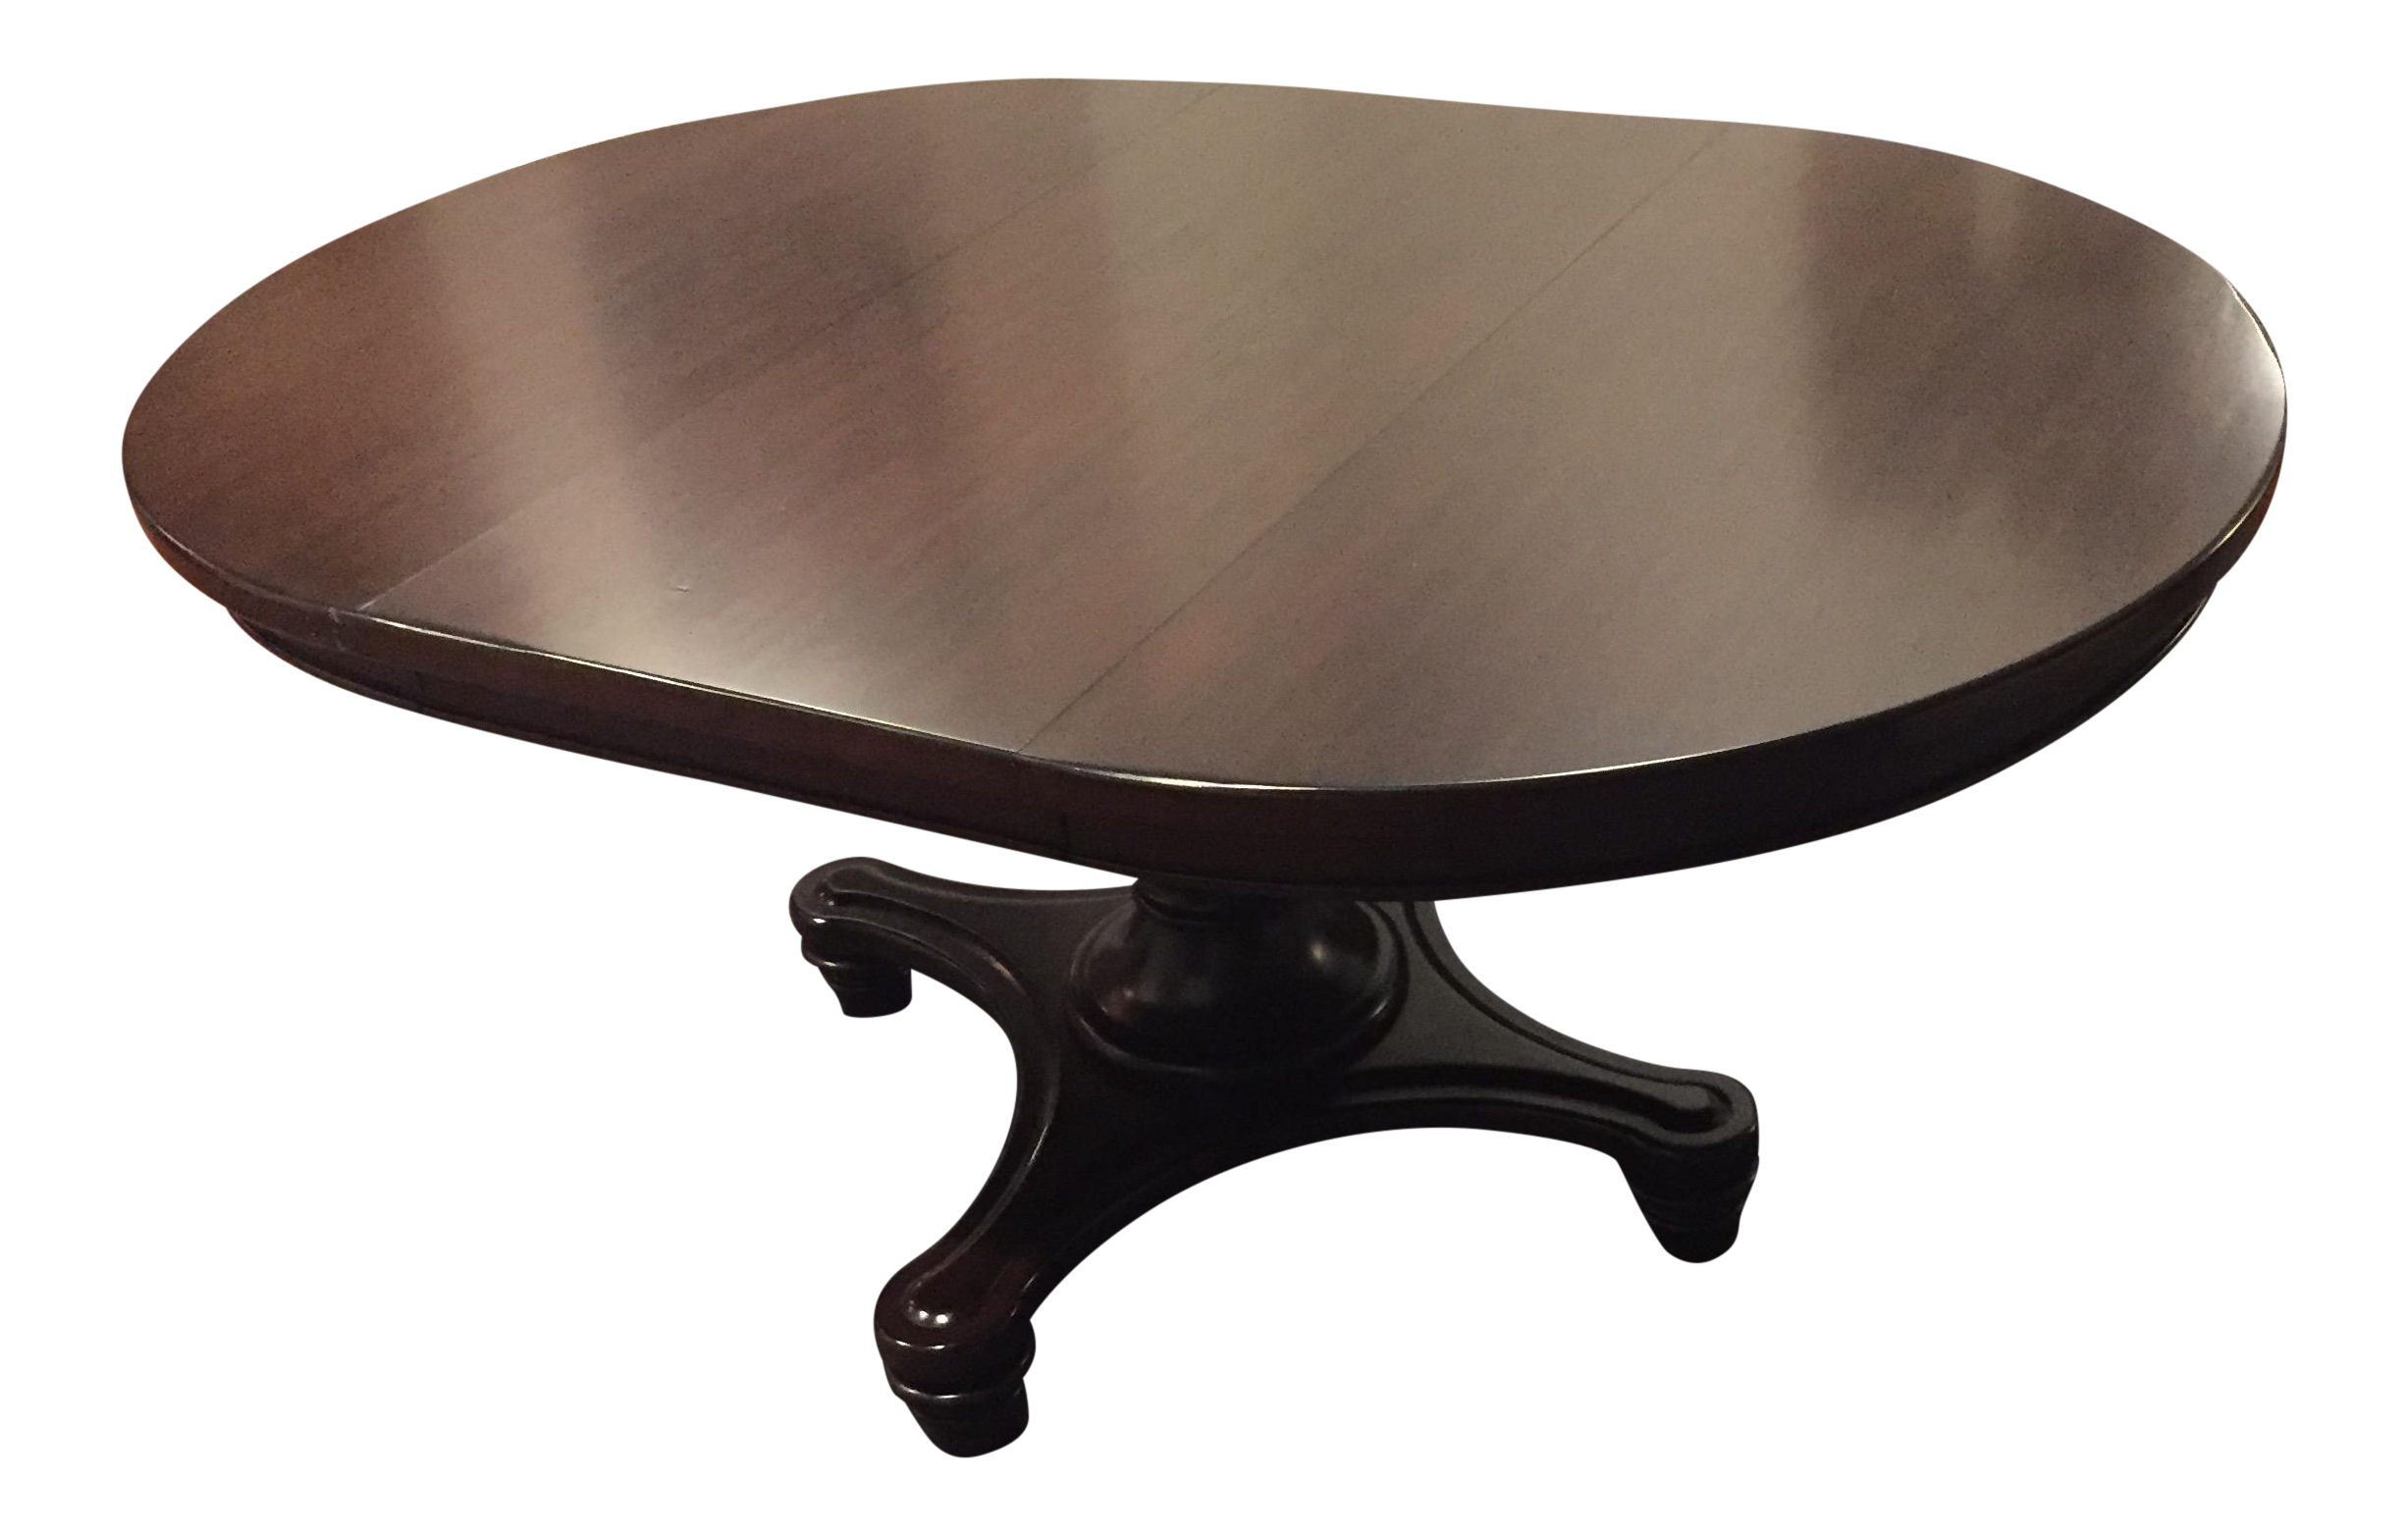 Pottery Barn Montego Pedestal Extension Dining Table  : 5fa9e79a b4cb 46c1 be4f 69b3071d803aaspectfitampwidth640ampheight640 from www.chairish.com size 640 x 640 jpeg 20kB